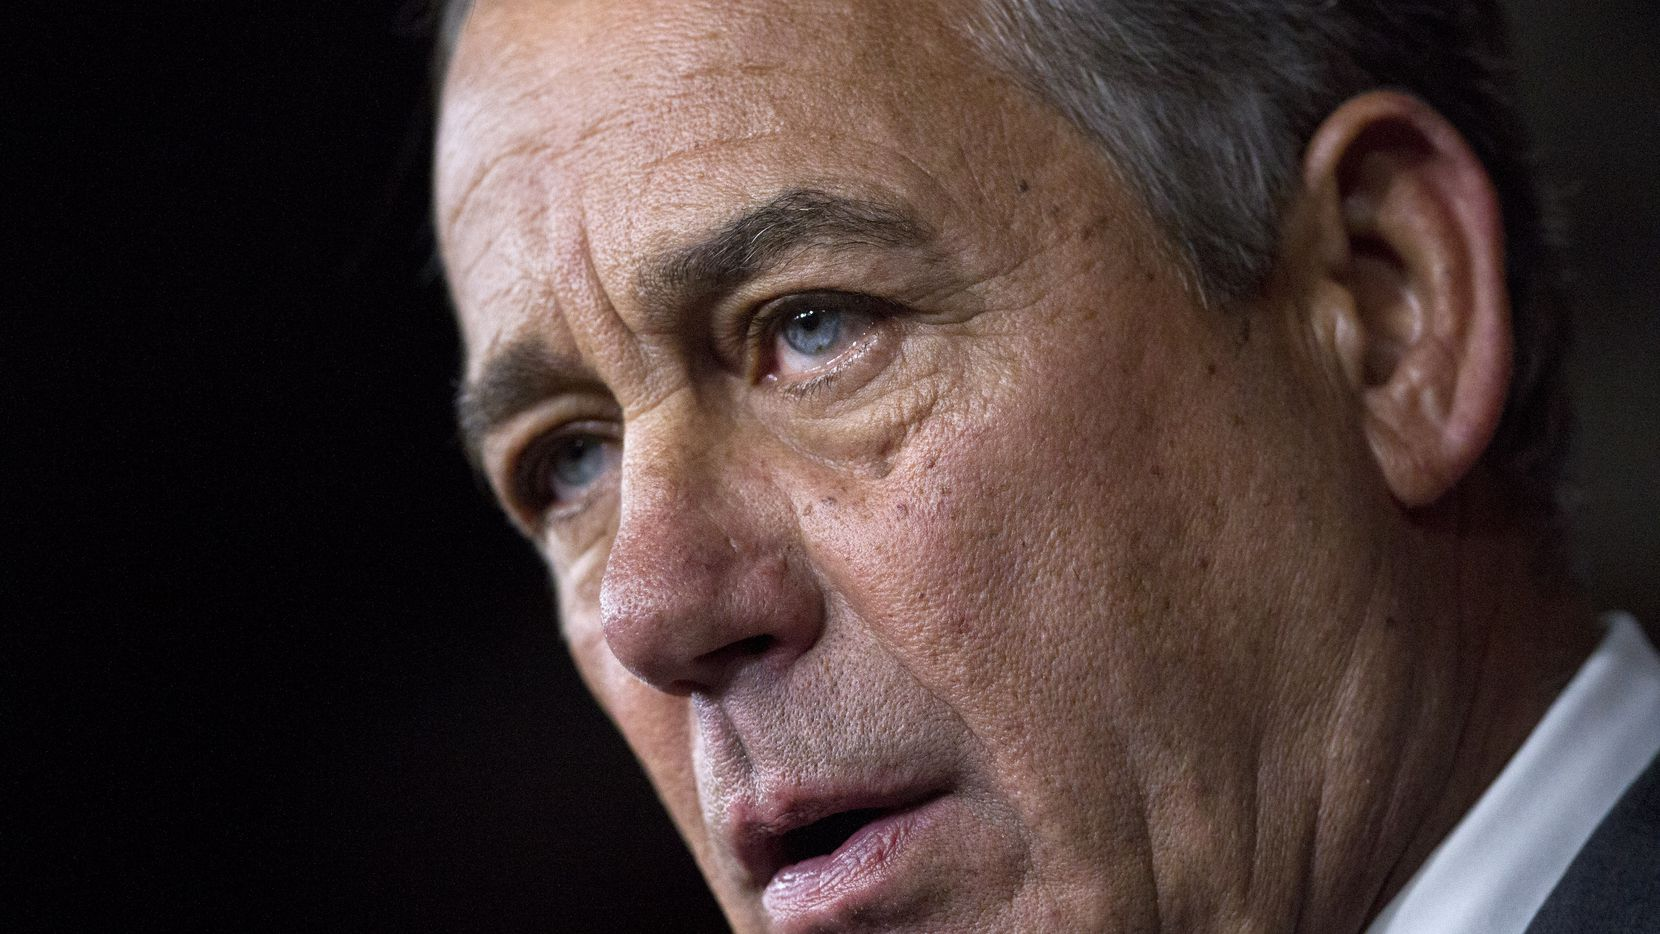 """Former House Speaker John Boehner had this advice for his successor: """"His number one responsibility is to protect the institution. Nobody else around here has an obligation like that. Secondly, I'd tell him … you just do the right thing every day for the right reasons, the right things will happen."""""""